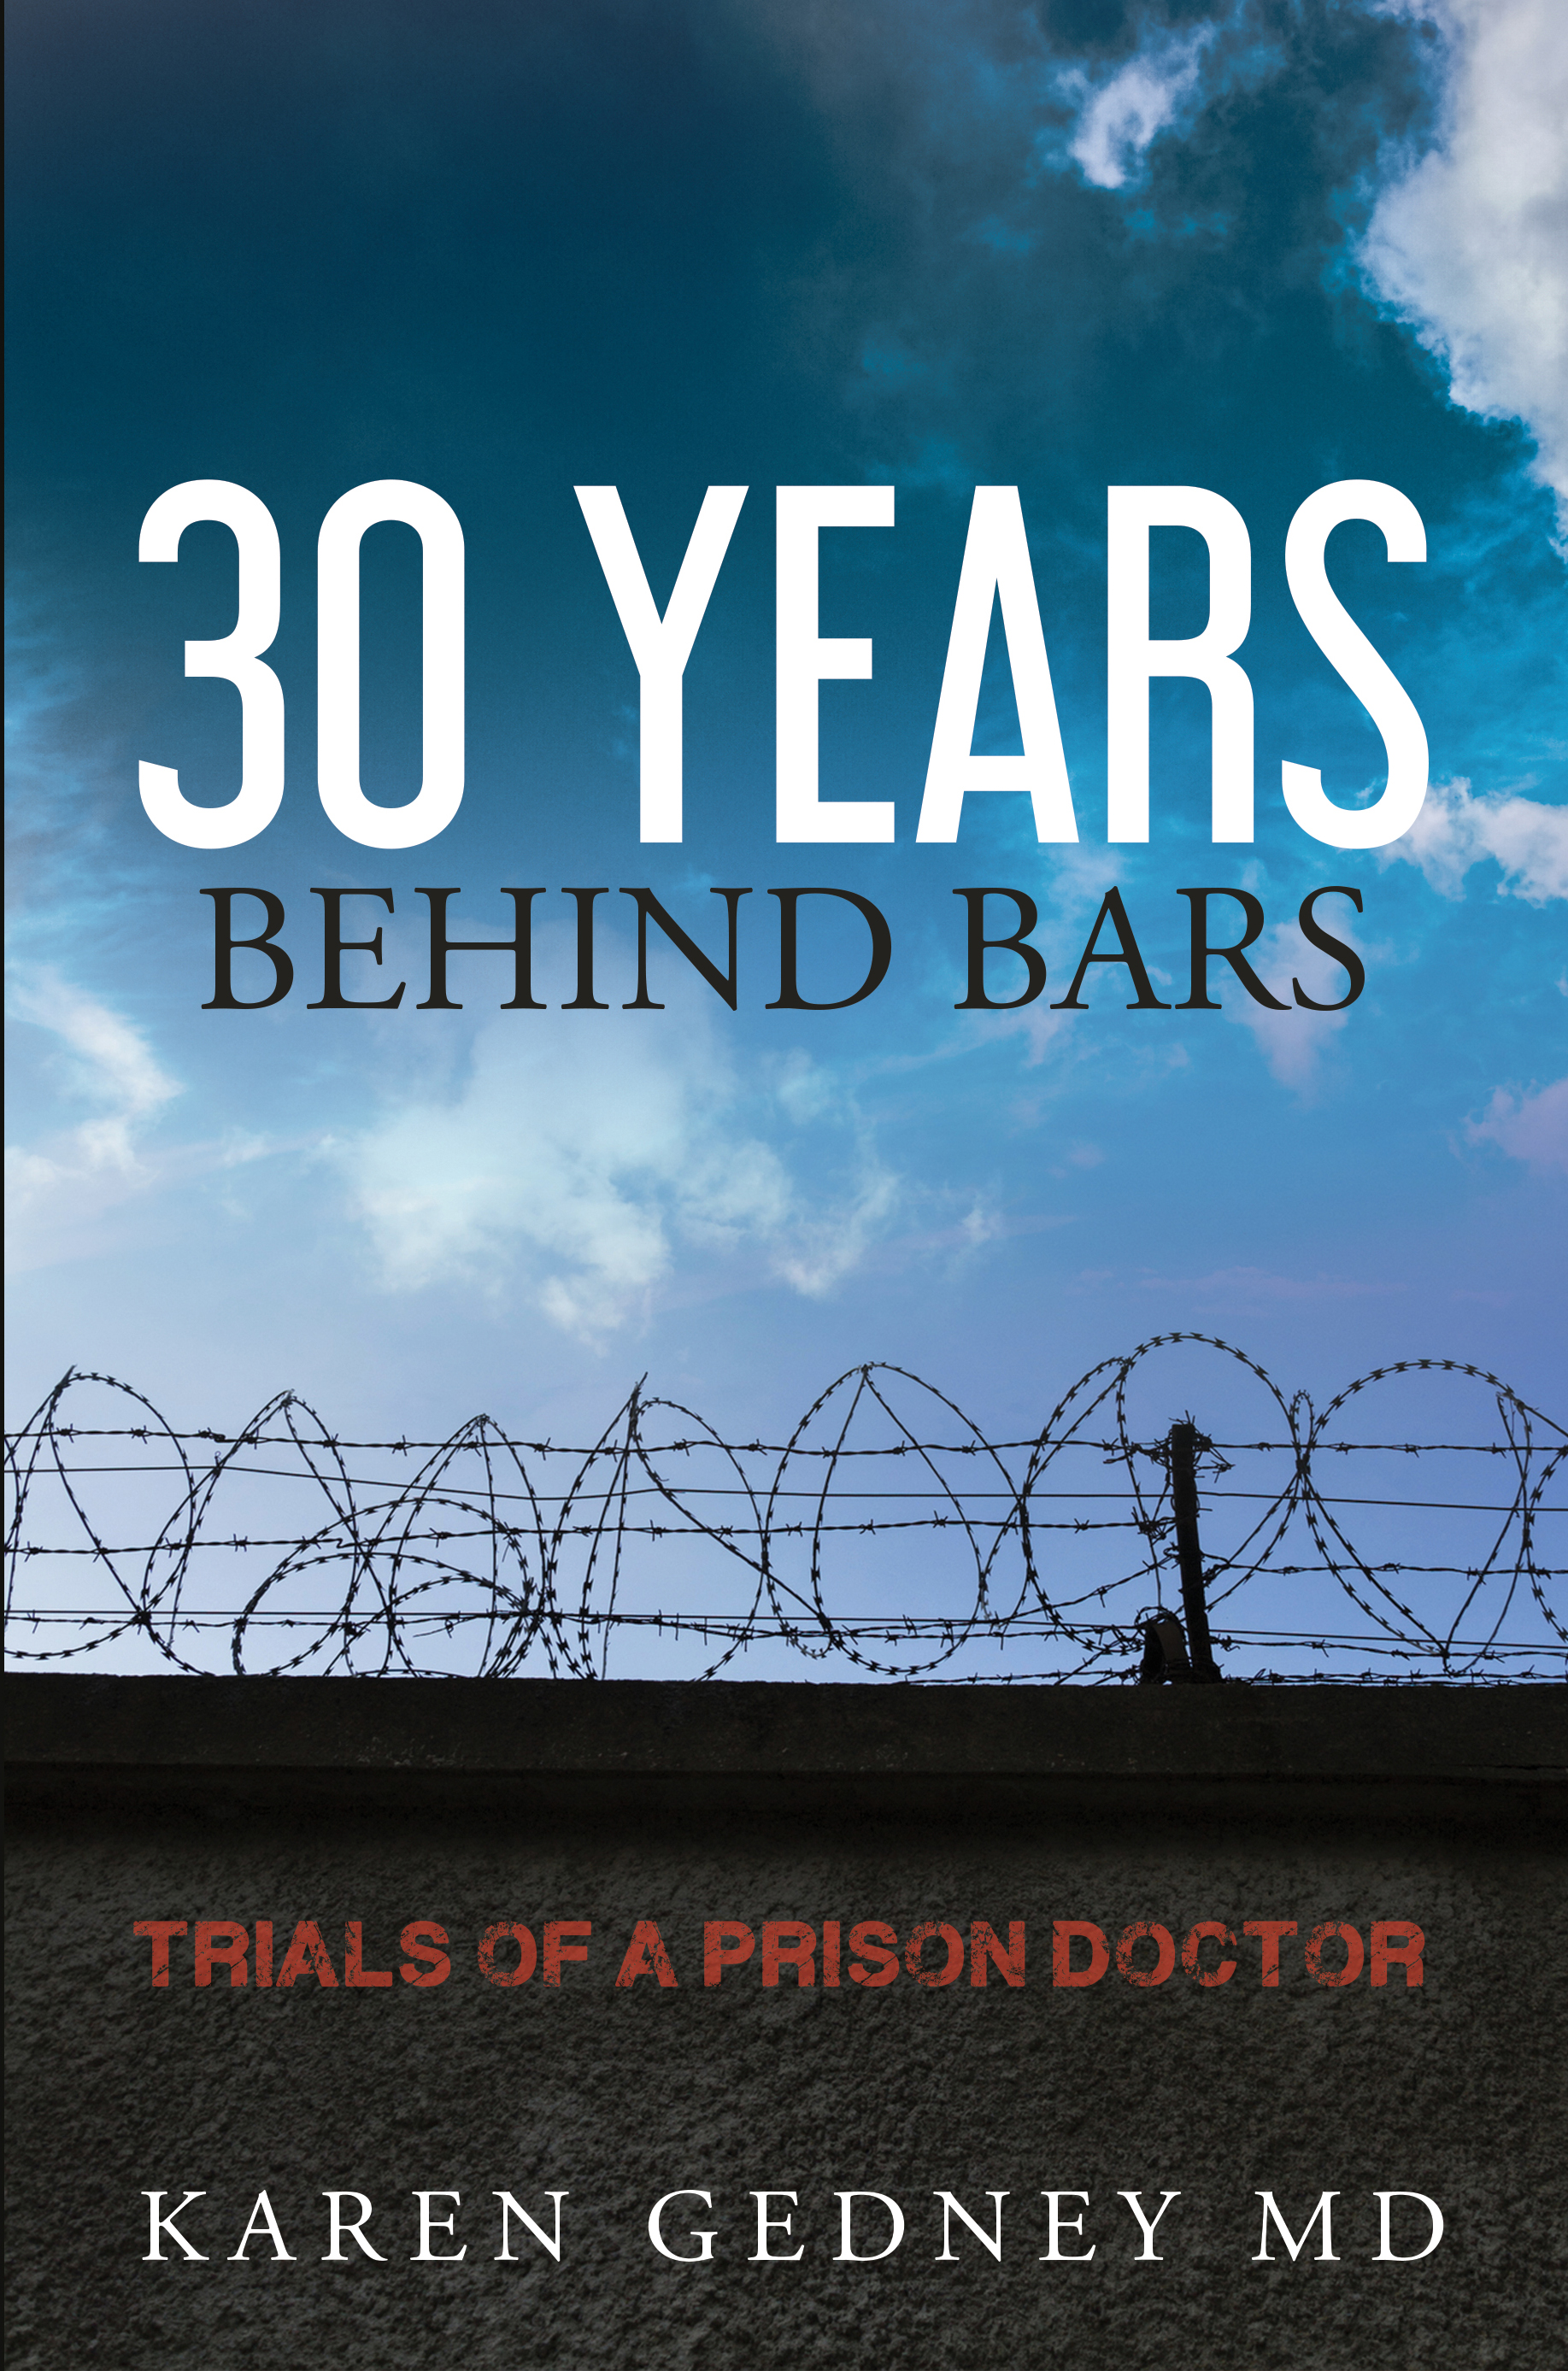 30 Years Behind Bars